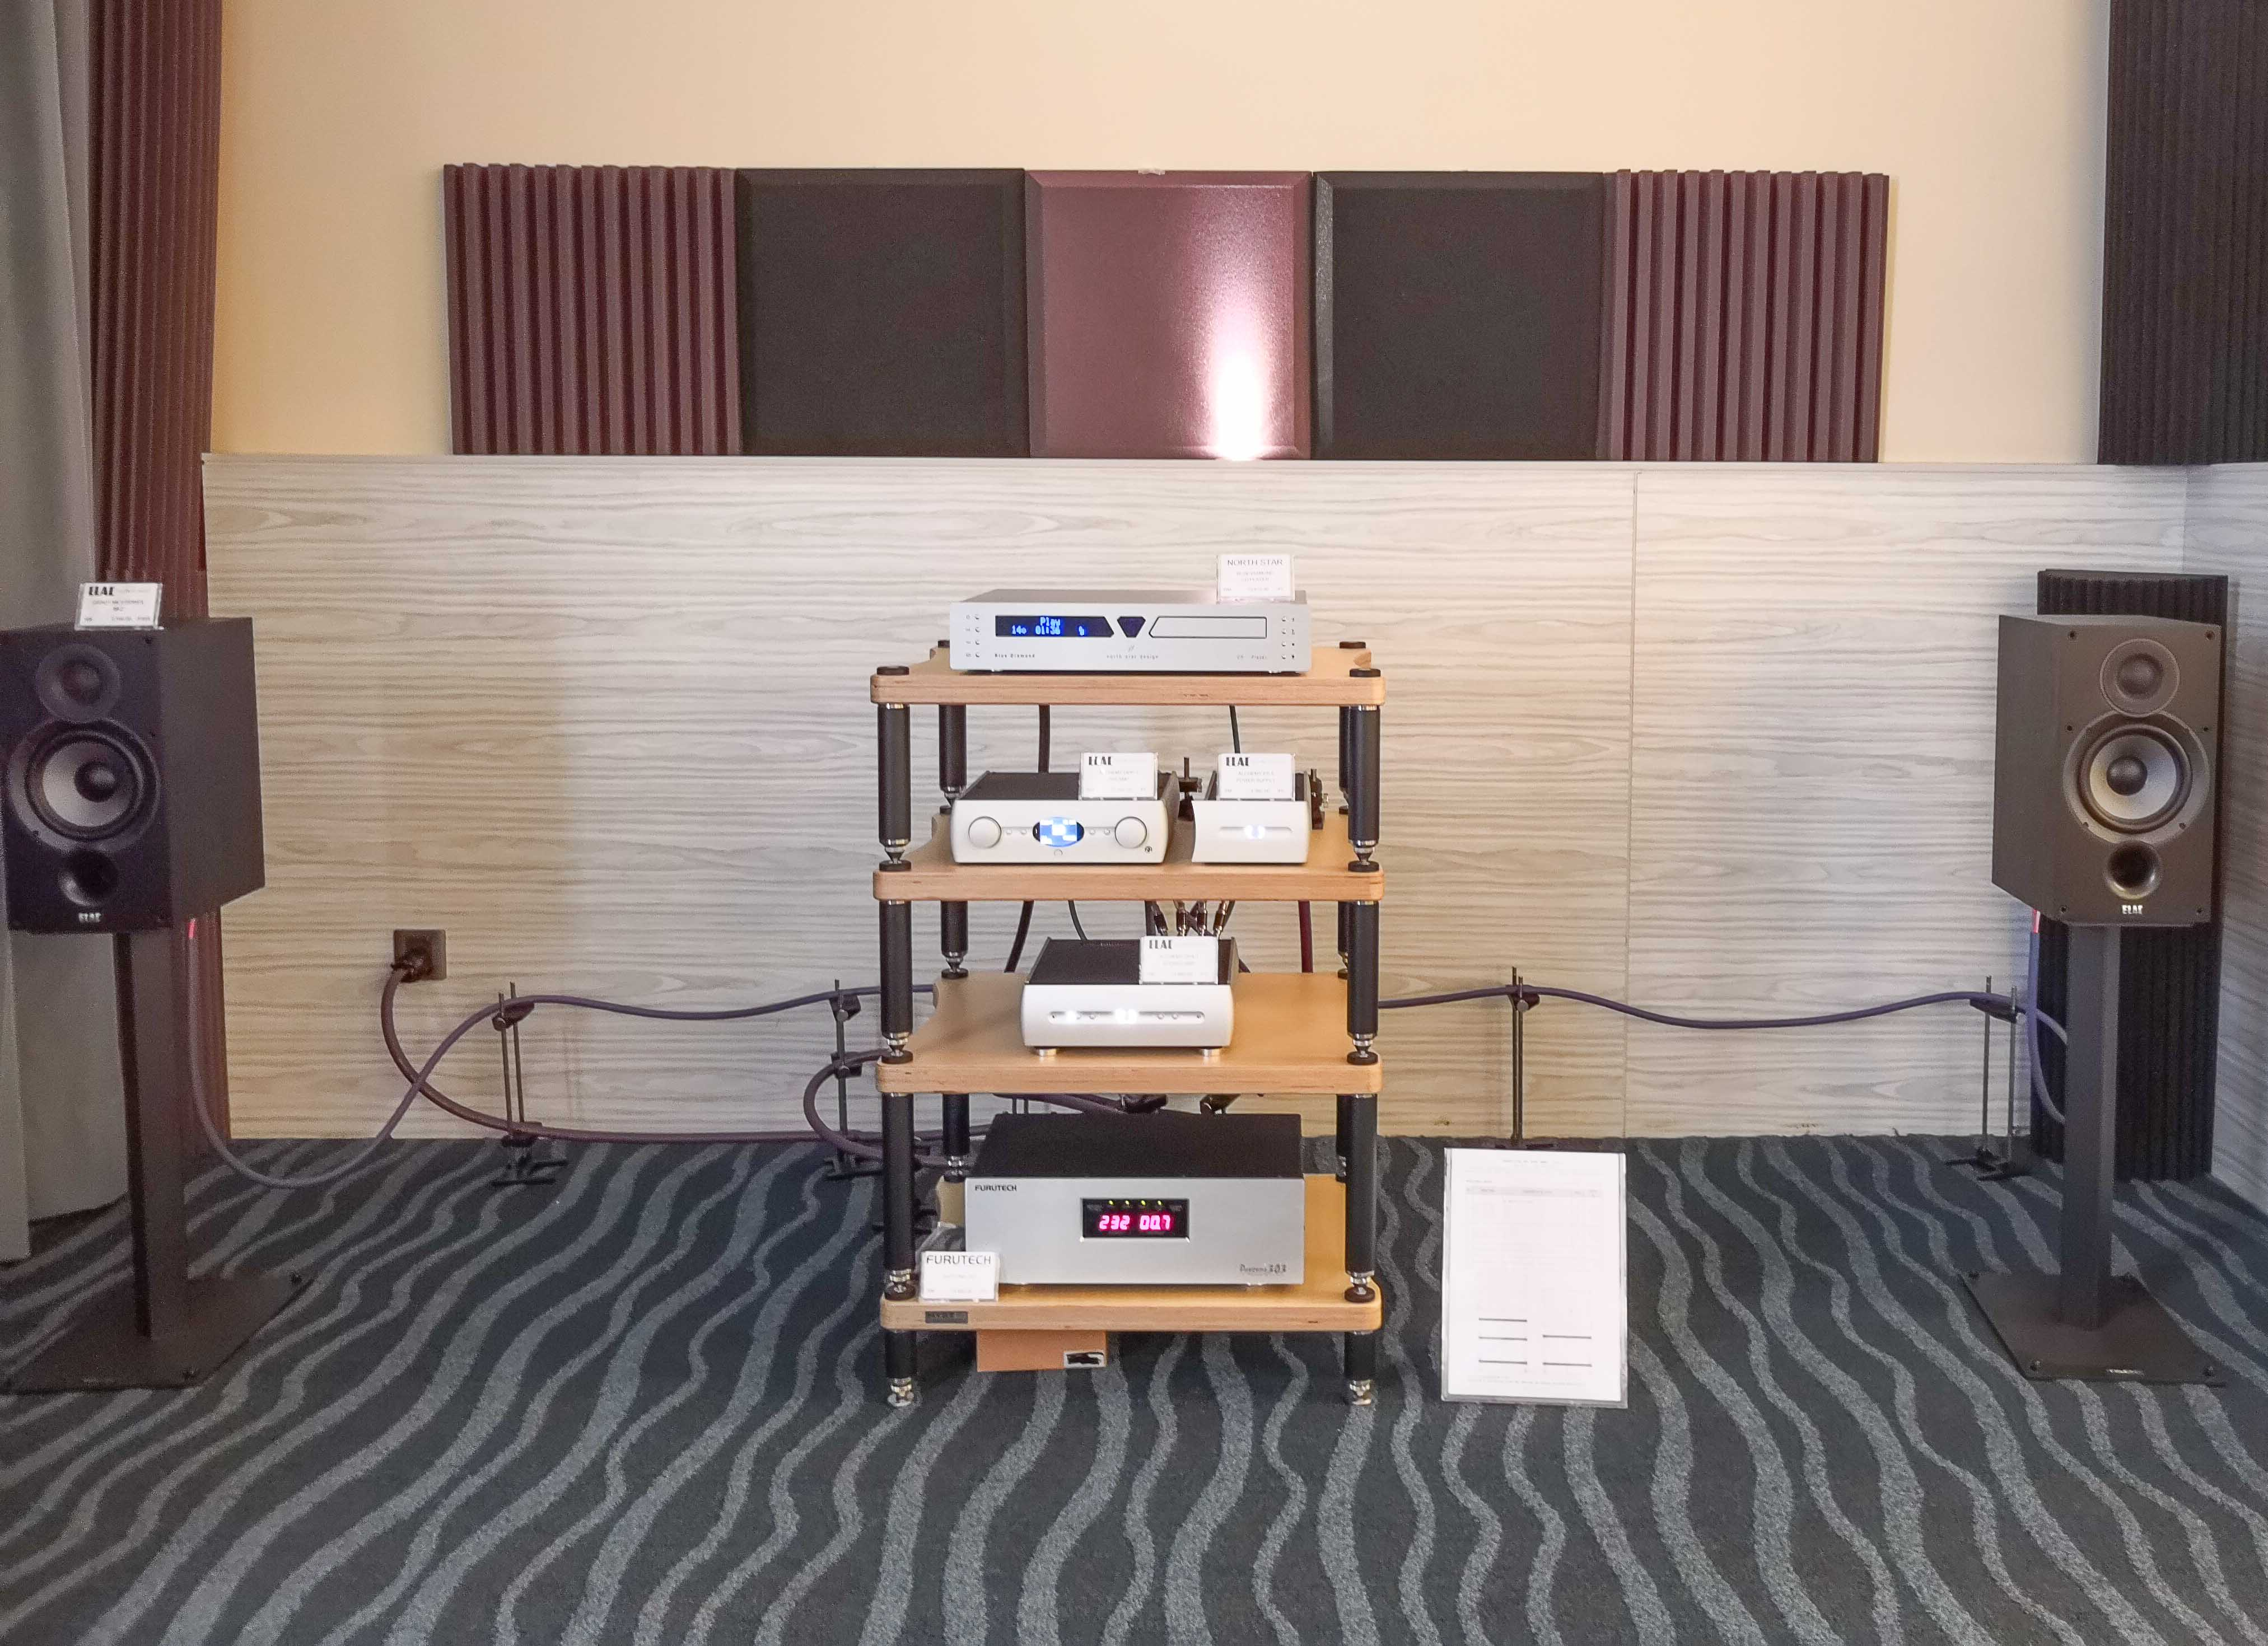 Furutech Ncf Boosters At Kl International Audio Show Malaysia Cheap Booster Cav 8 Mde